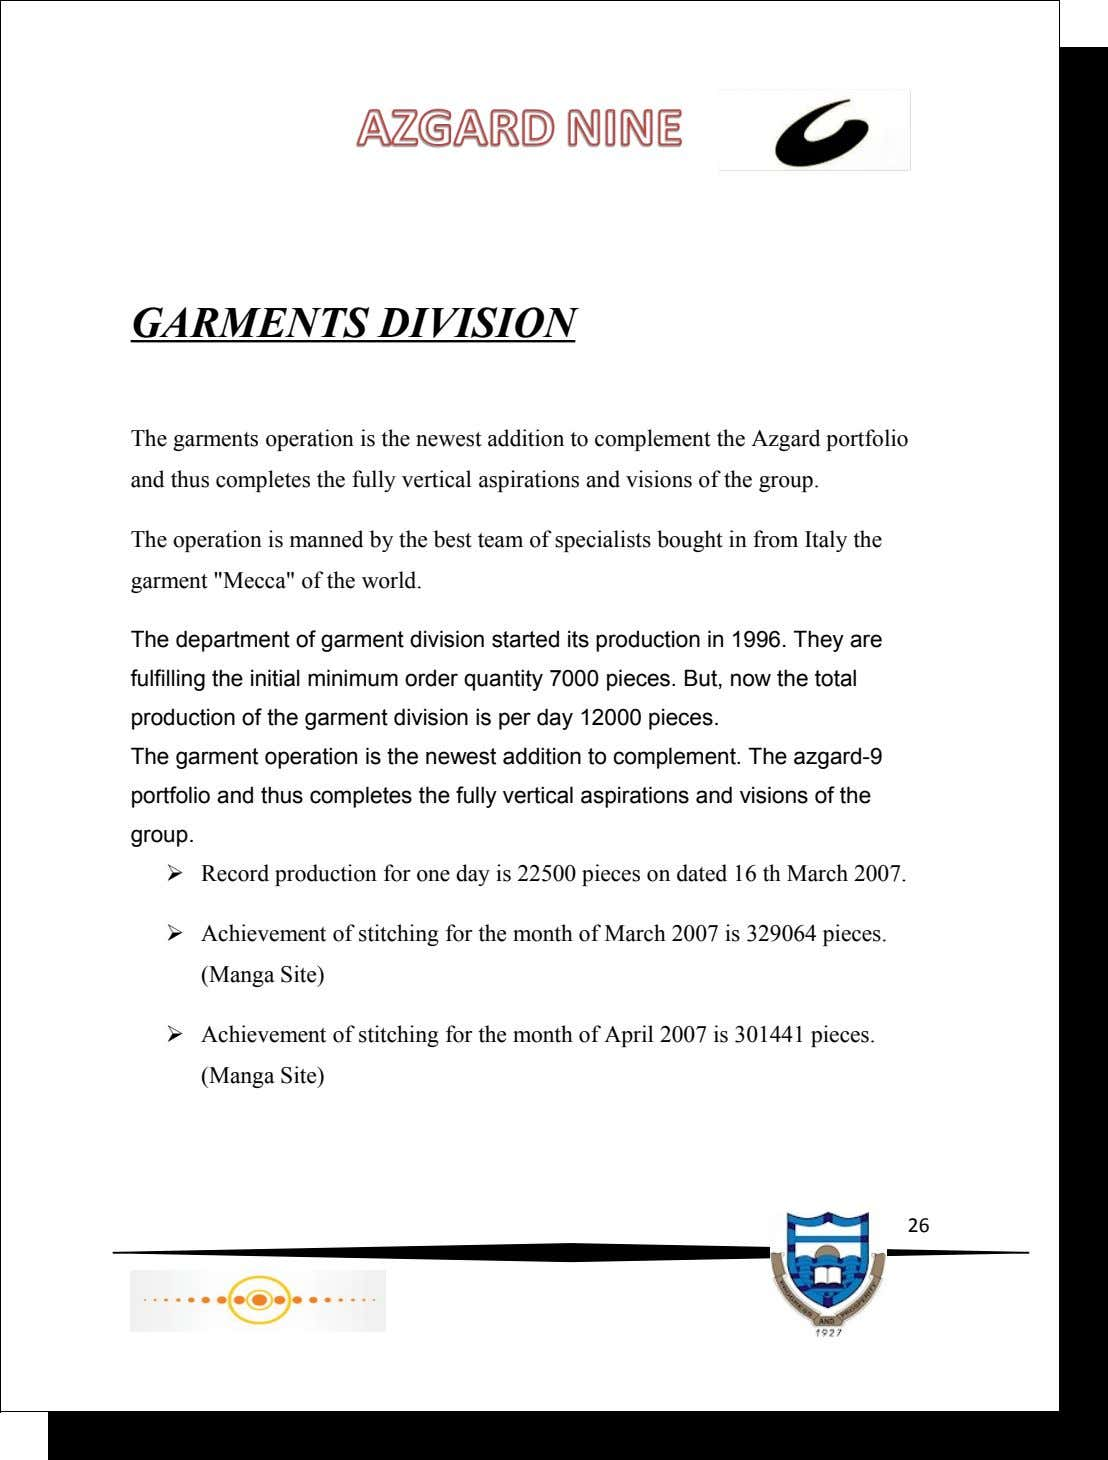 GARMENTS DIVISION The garments operation is the newest addition to complement the Azgard portfolio and